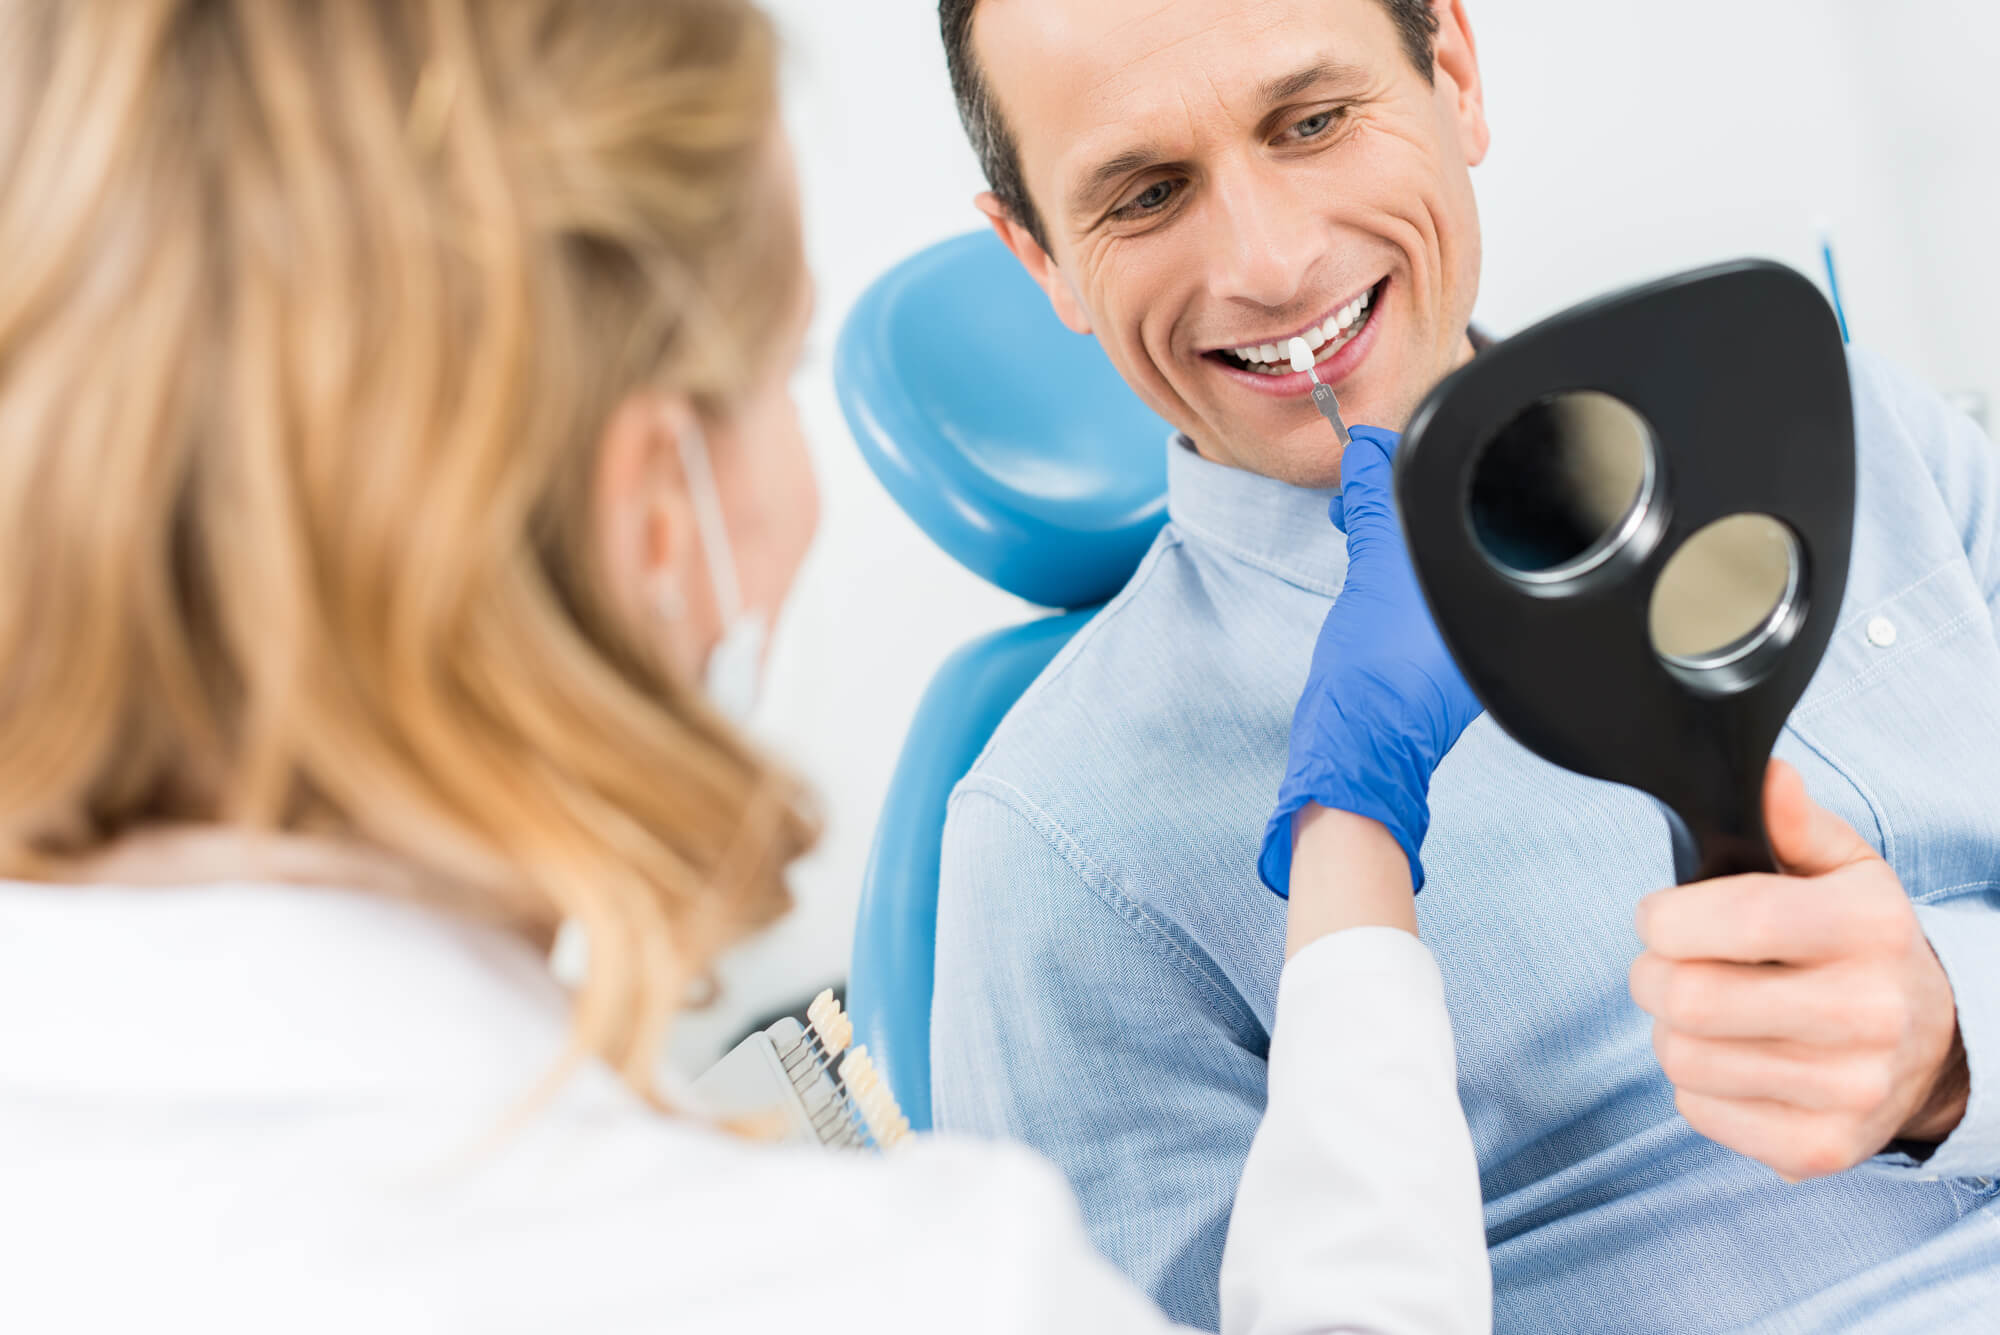 A general dentist in aurora coholding a tooth sample to a patient's teeth